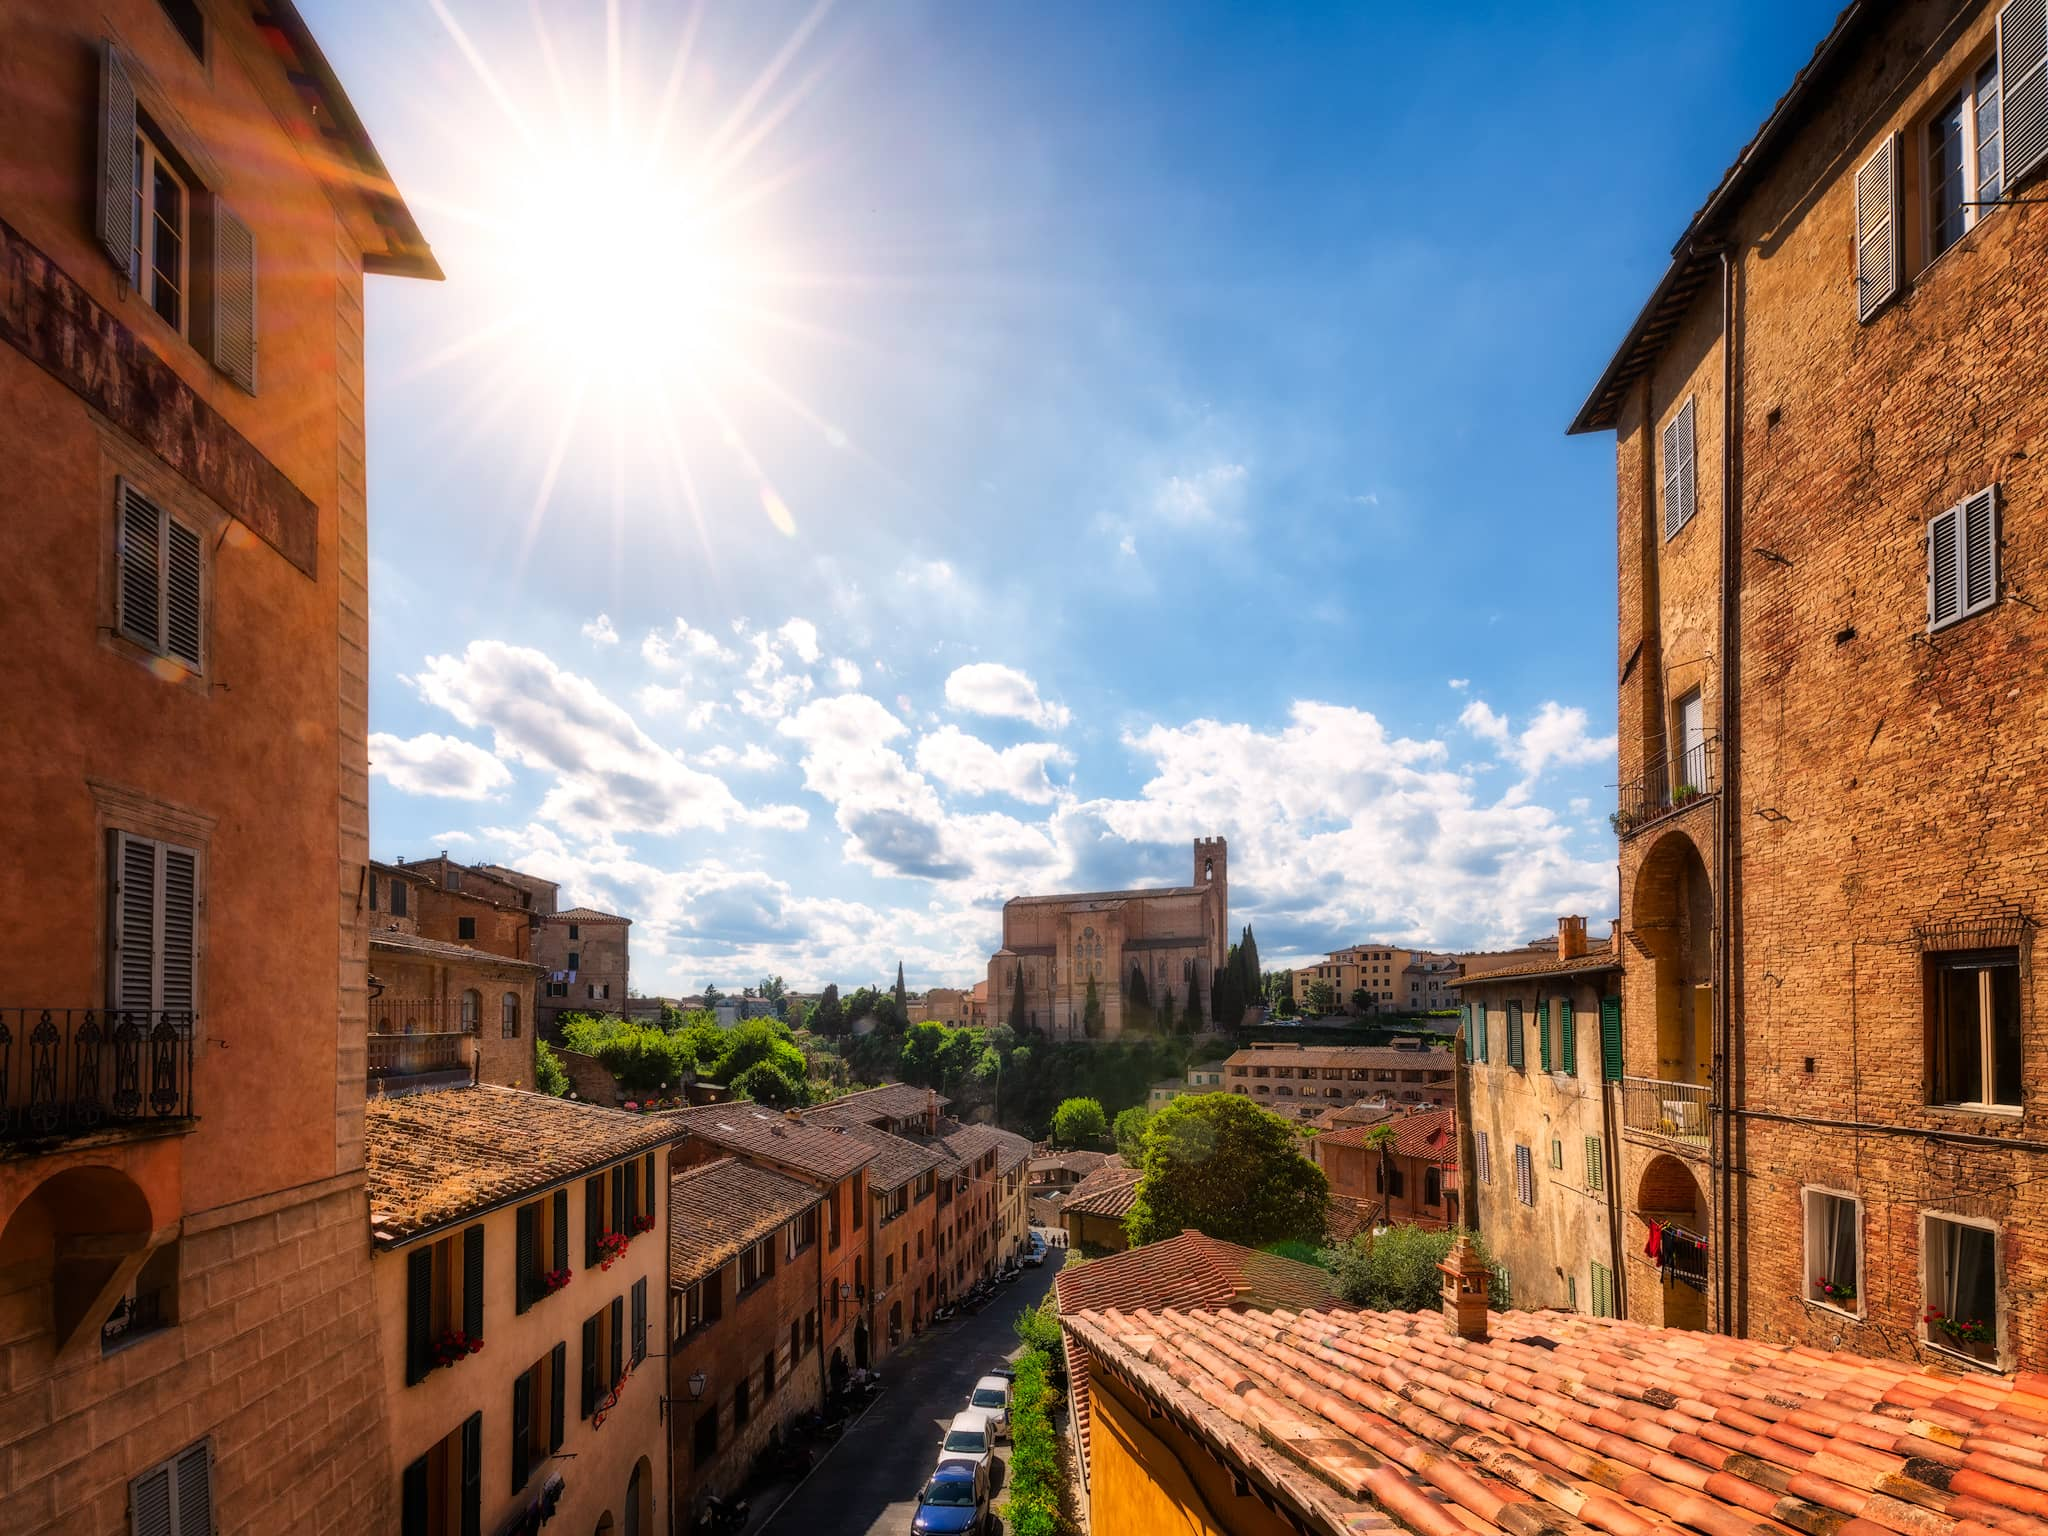 Basilica di San Domenico in Siena, Italy – a summer's day.